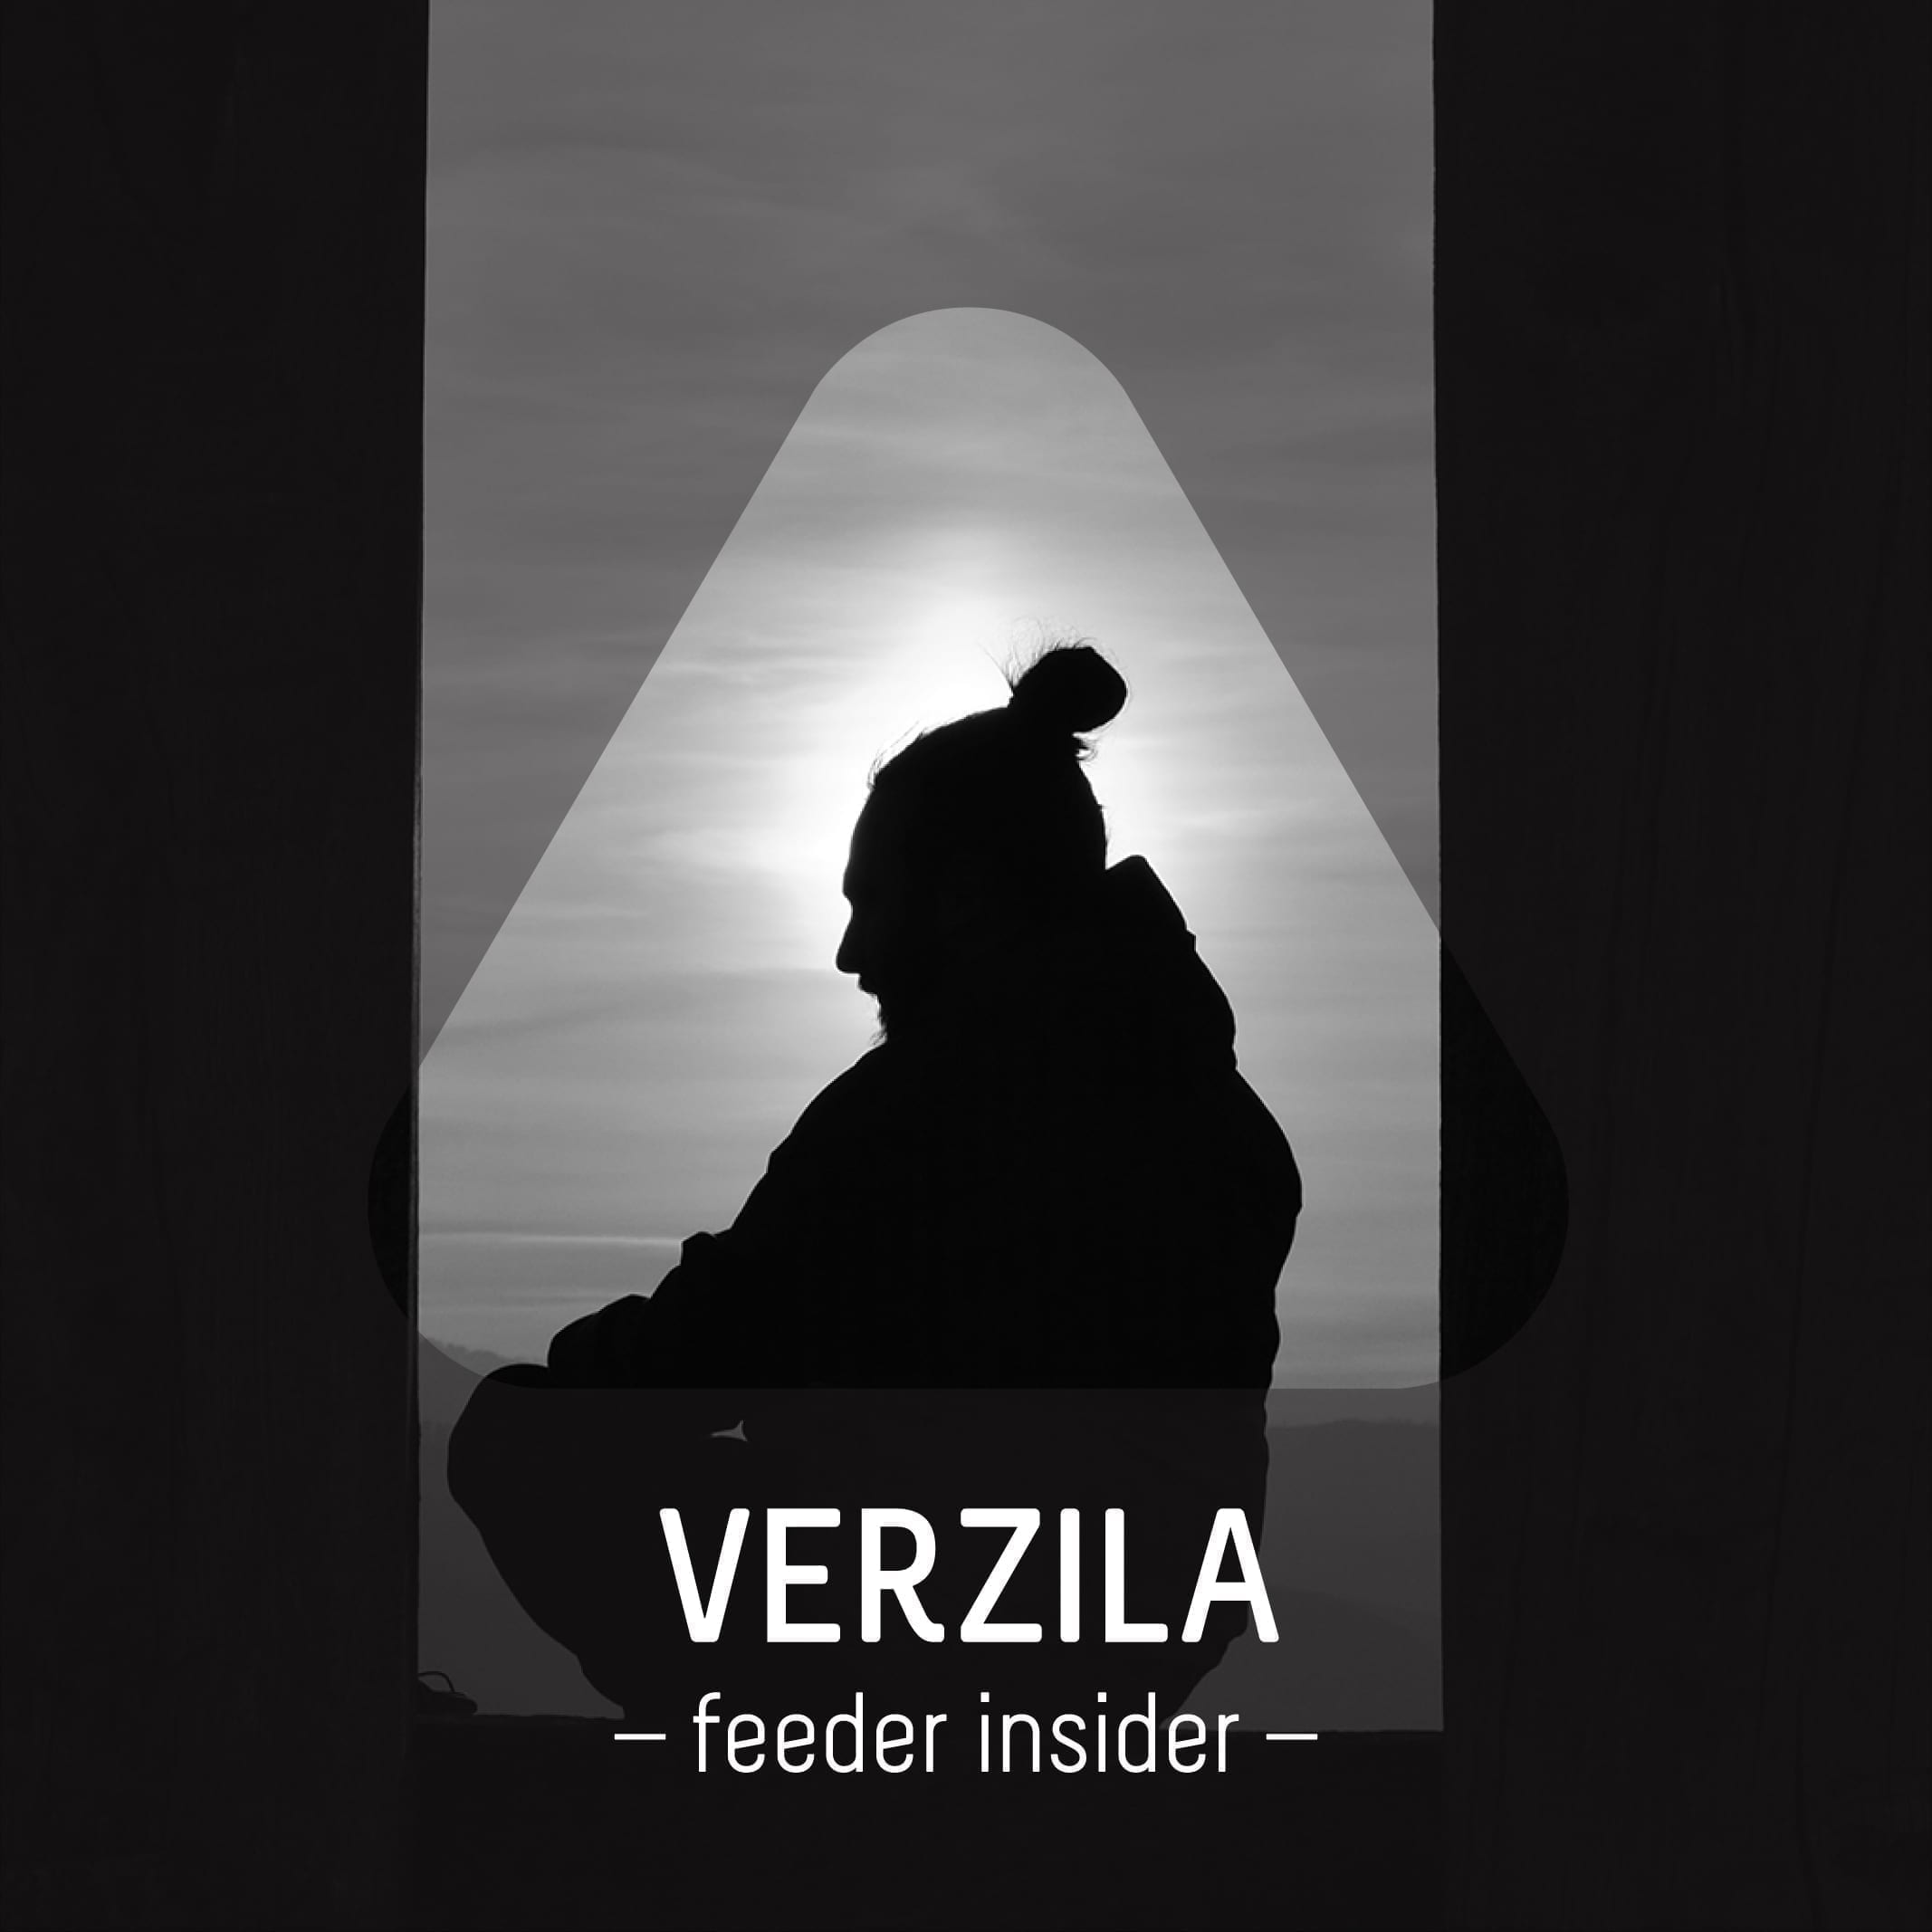 feeder insider interview with Verzila